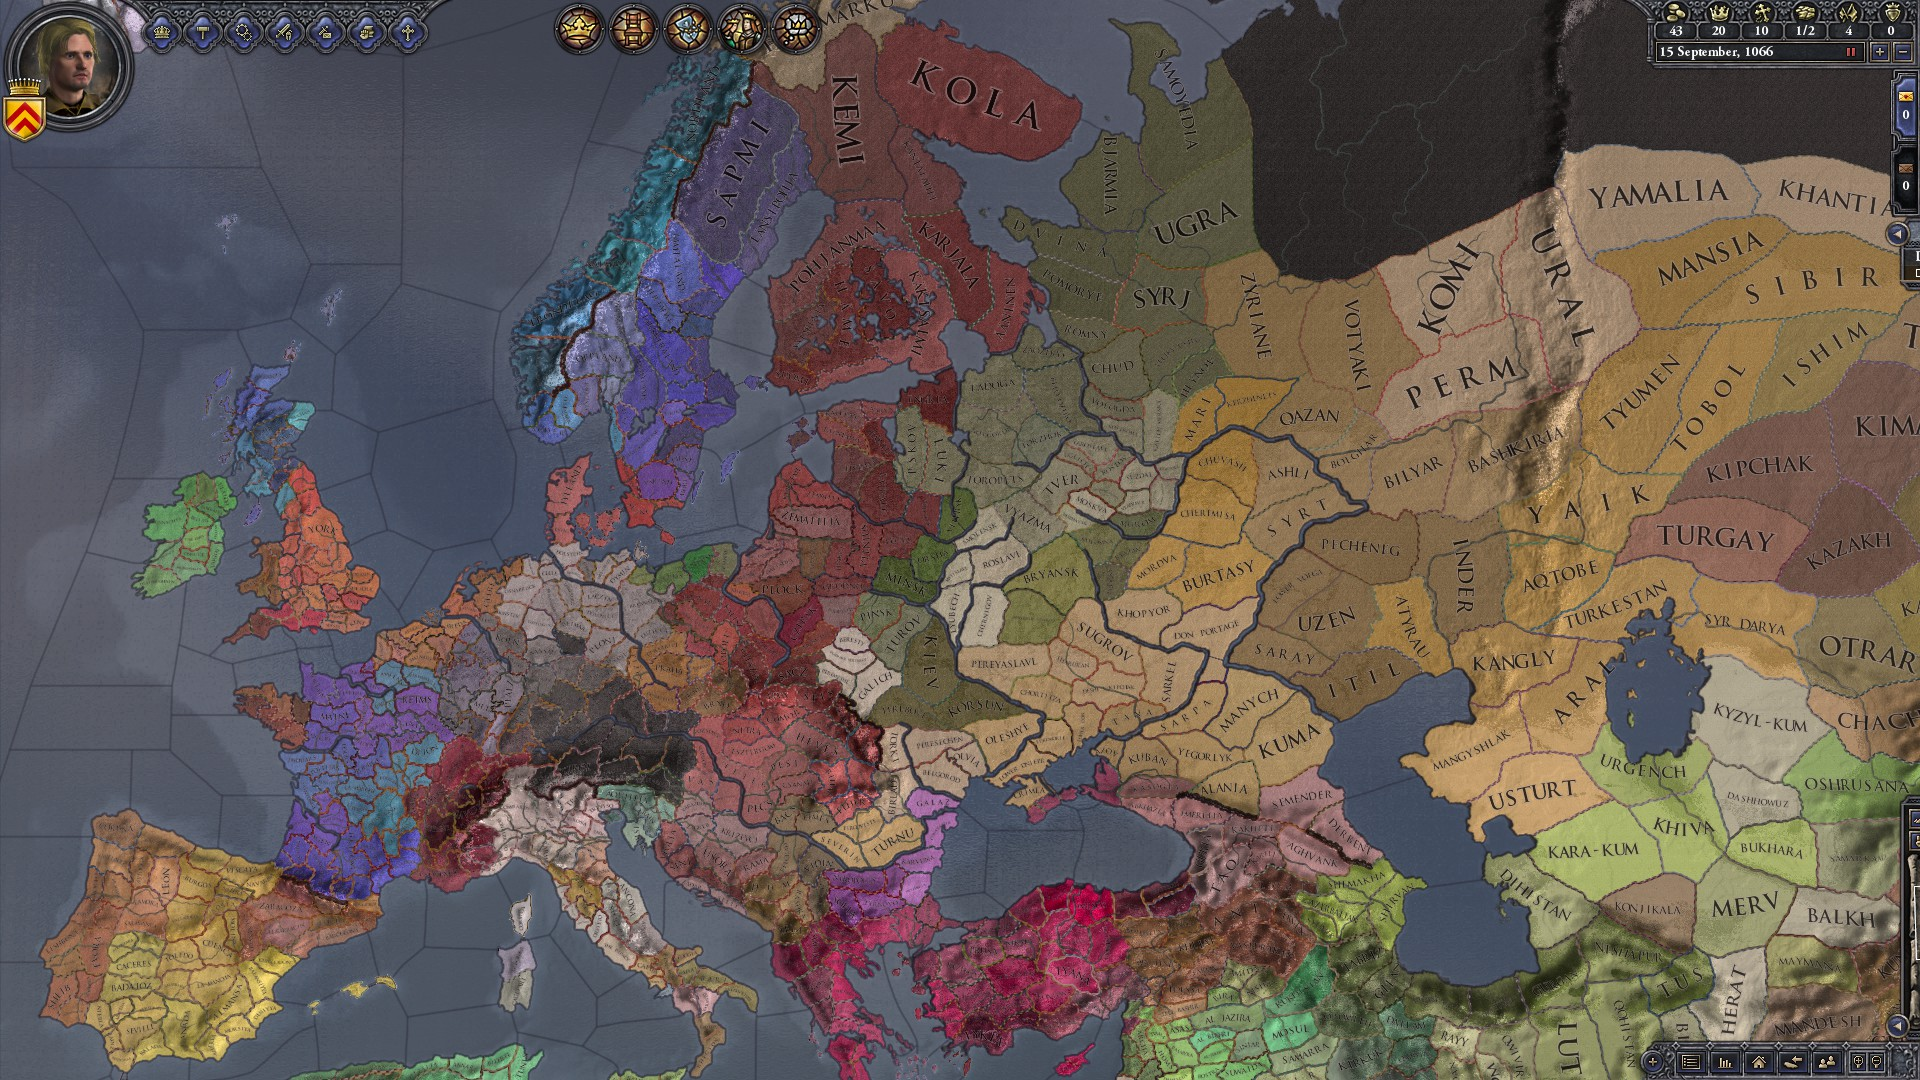 Shattered world (Mod) | Crusader Kings II Wiki | FANDOM